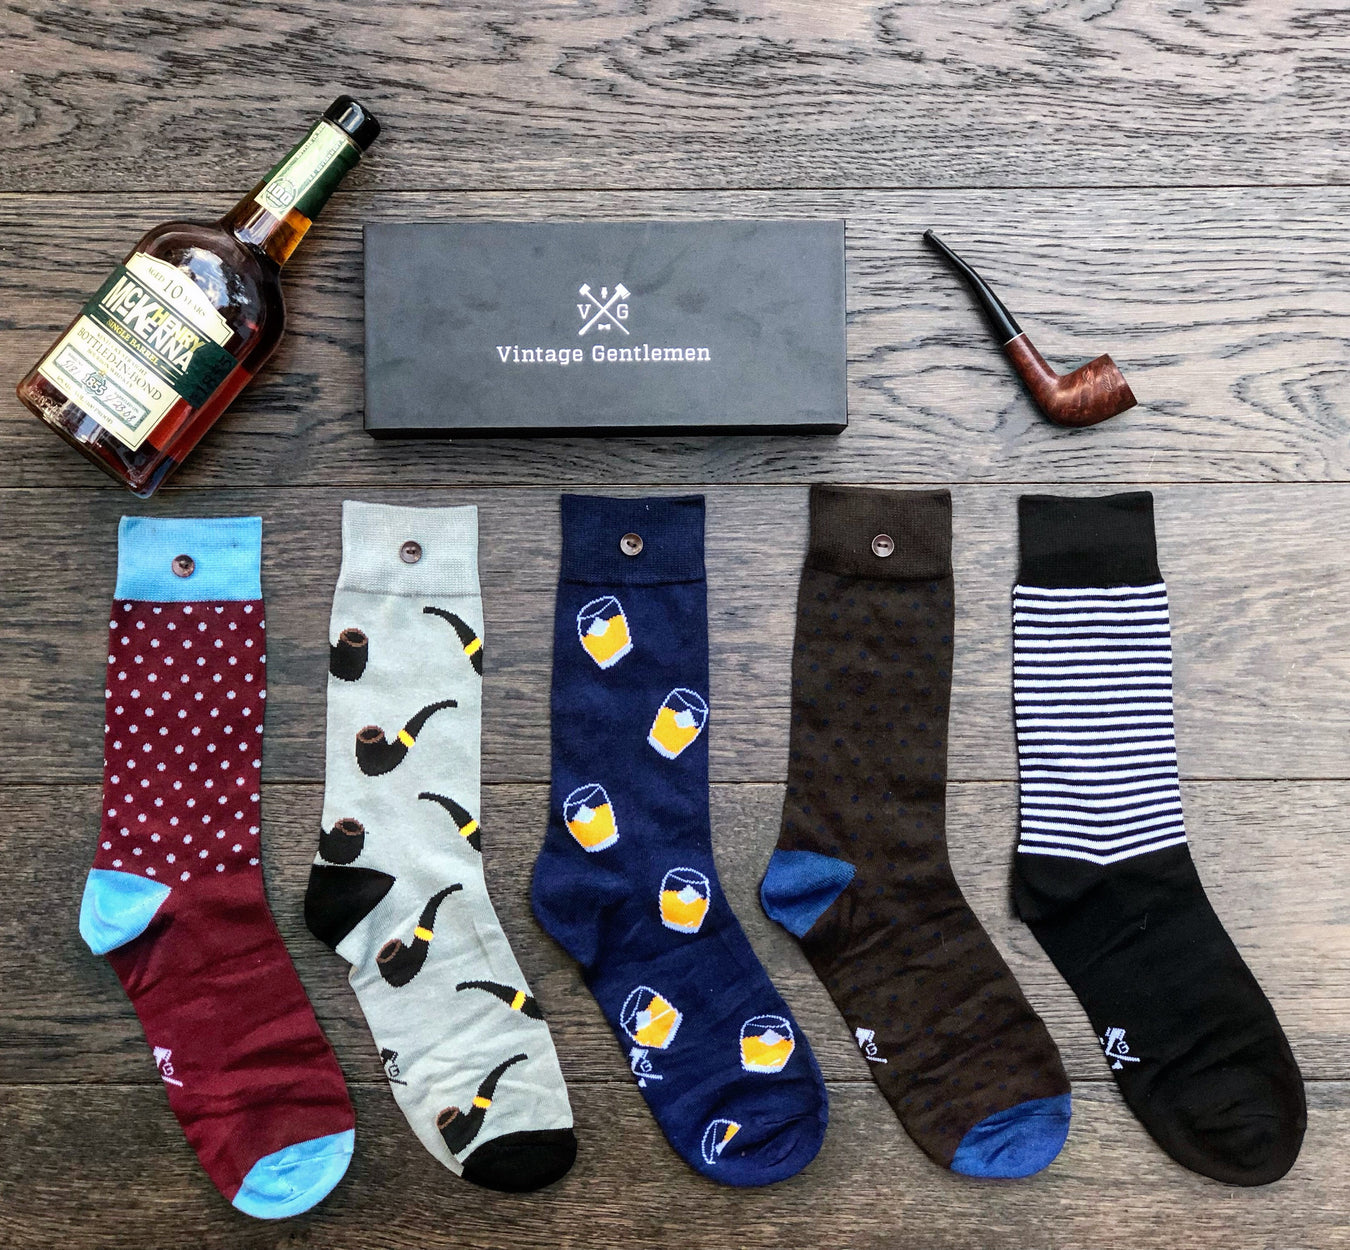 Vintage Gentlemen Socks